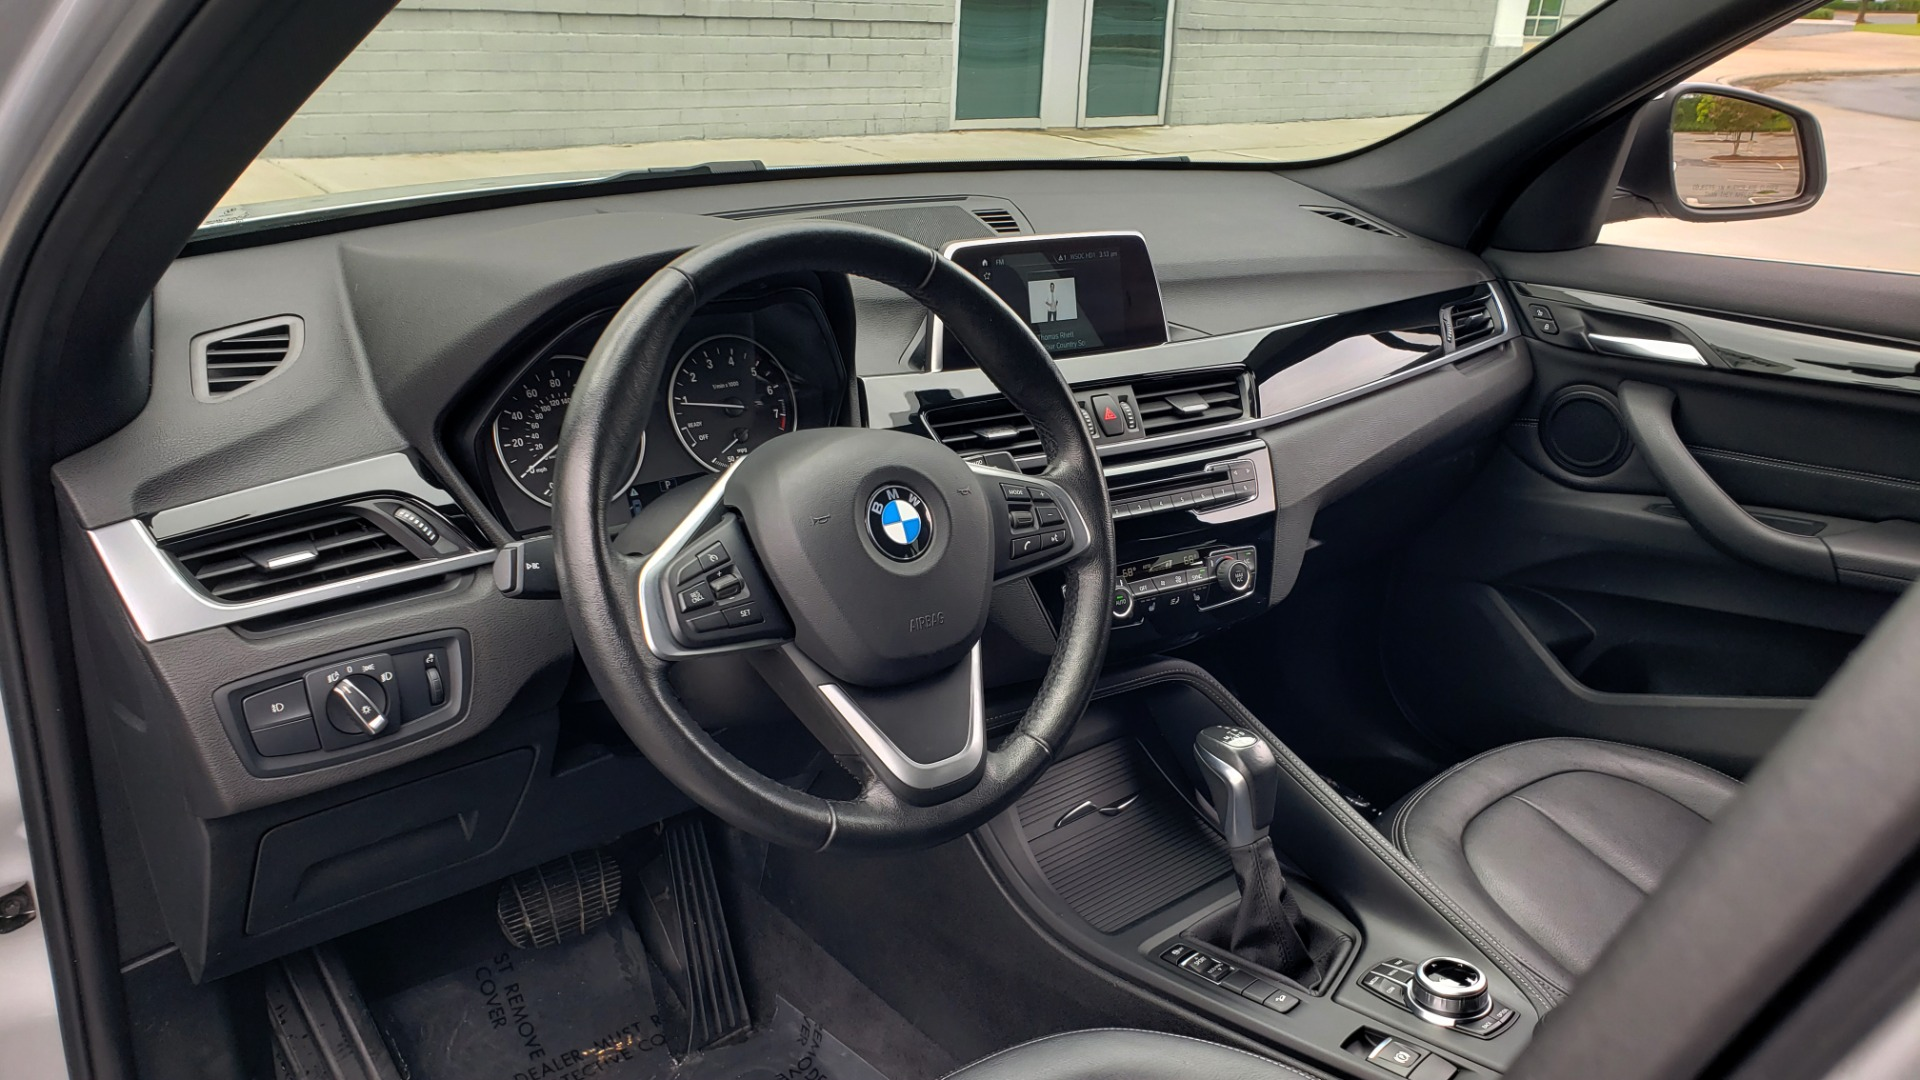 Used 2018 BMW X1 XDRIVE38I / NAV / CONV PKG / PANO-ROOF / HTD STS / REARVIEW for sale $28,995 at Formula Imports in Charlotte NC 28227 37